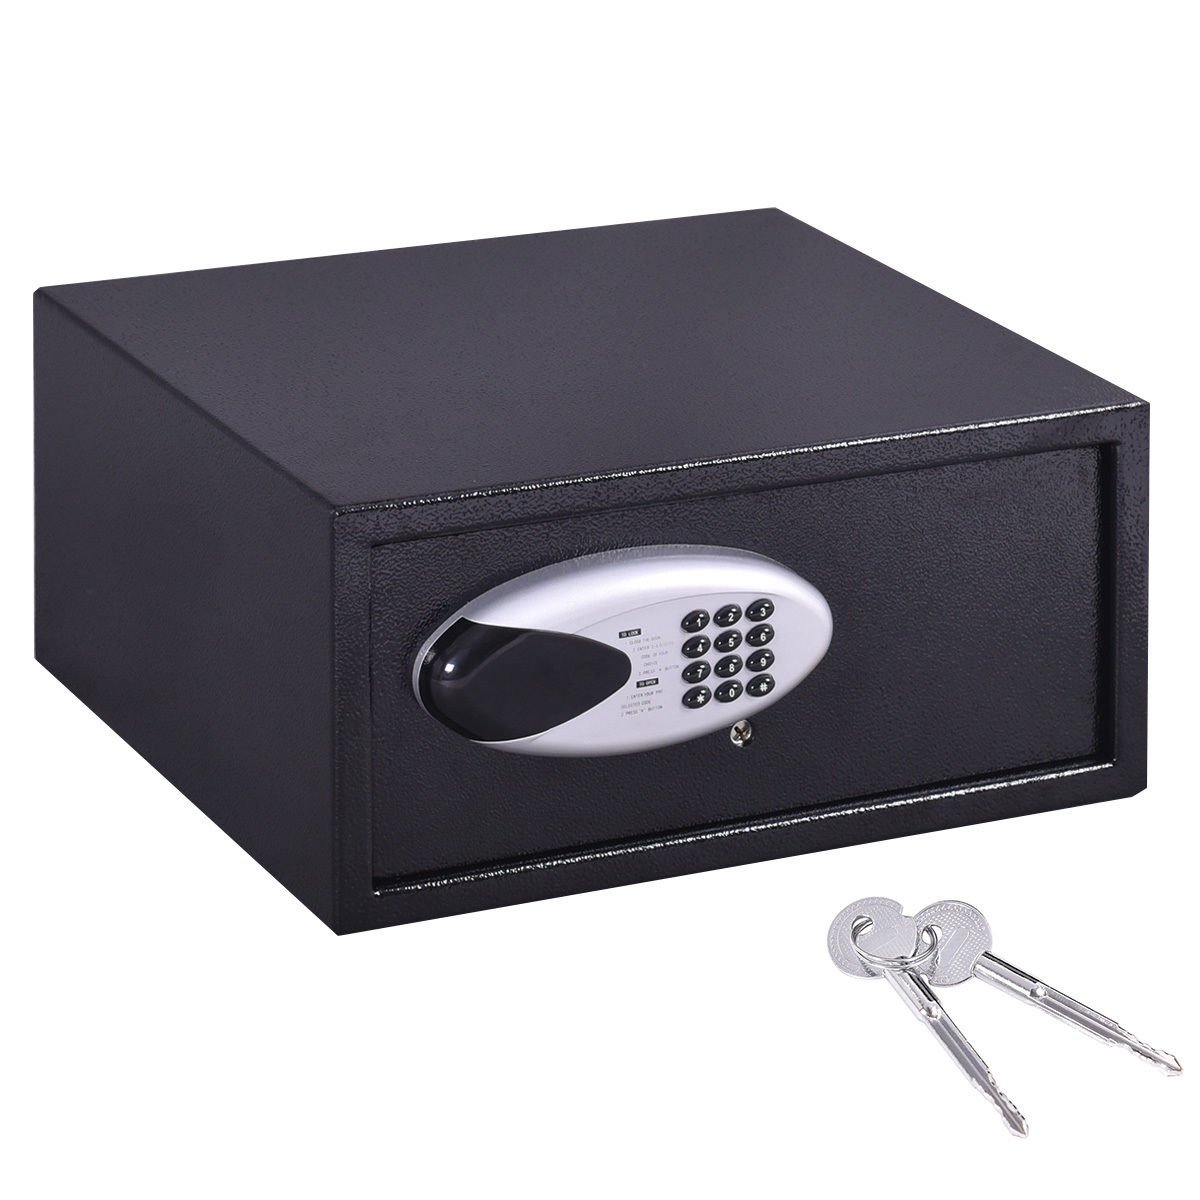 Safstar Electronic Security Safe Box Home Hotel Office Lock Safe Box Secures for Gun Jewelry Money(16.9'' x 14.4'' x 7.8'')